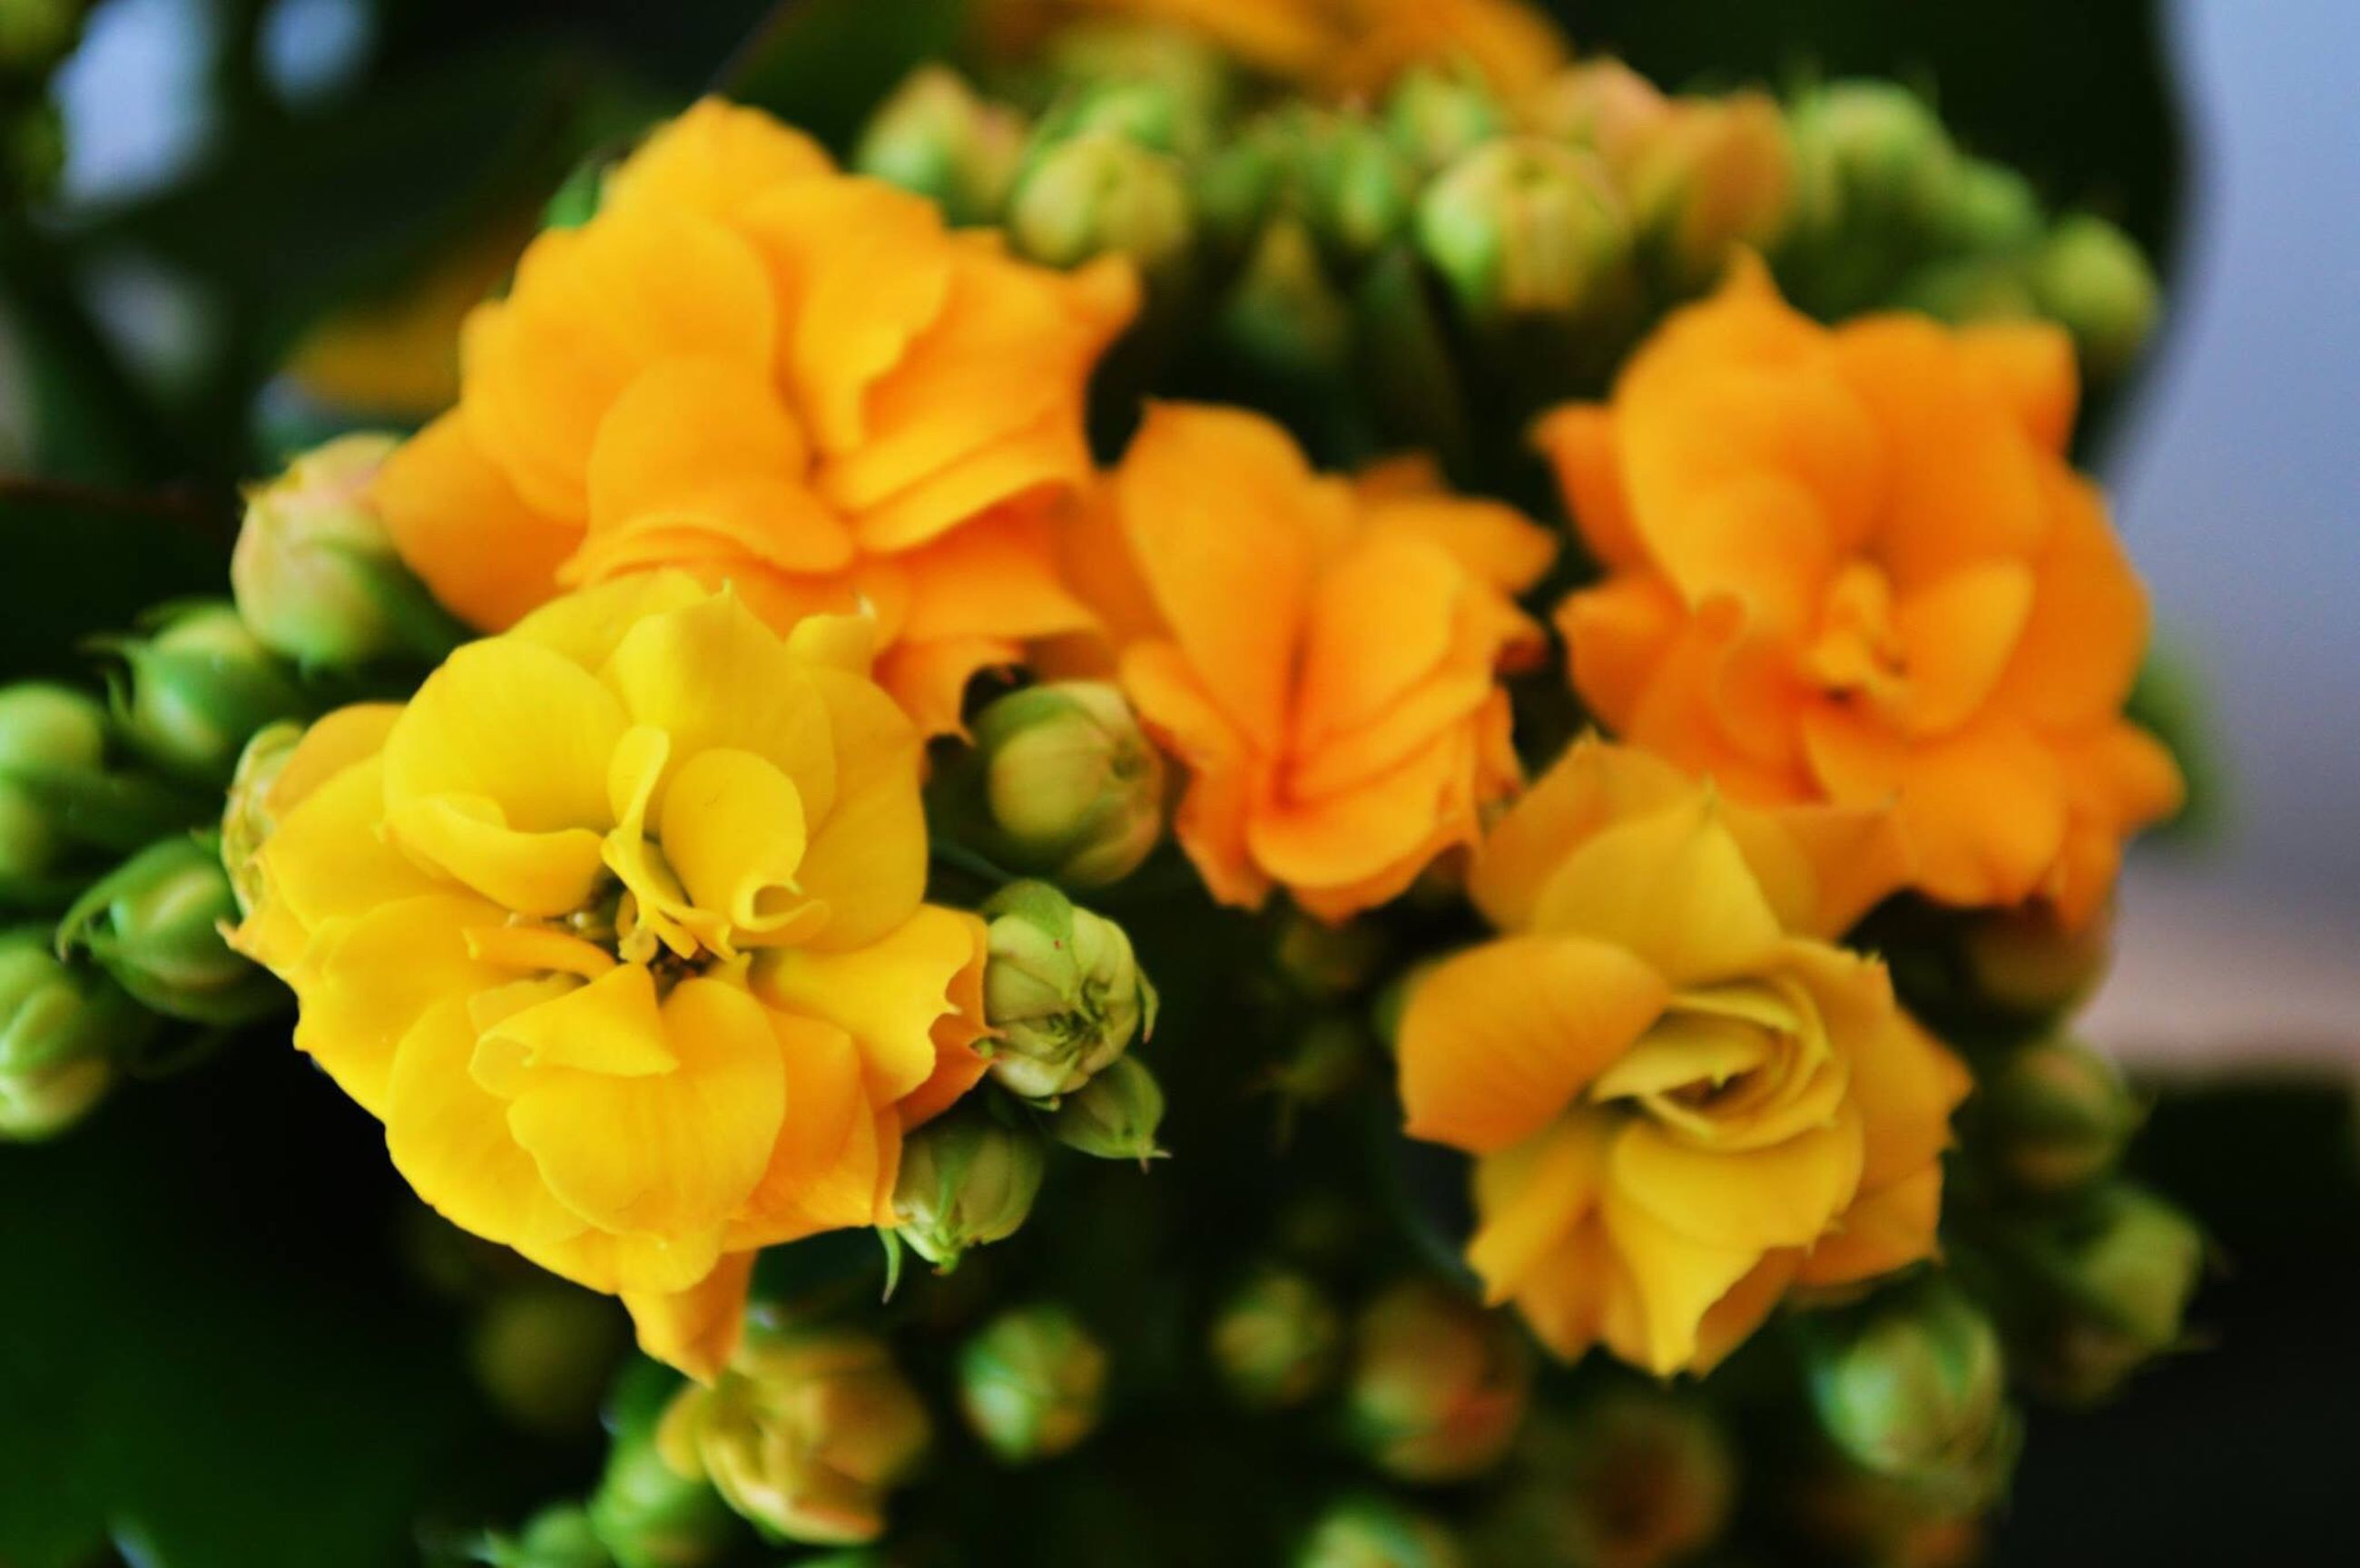 flower, petal, freshness, flower head, fragility, focus on foreground, beauty in nature, yellow, growth, close-up, blooming, nature, plant, in bloom, rose - flower, park - man made space, orange color, blossom, no people, day